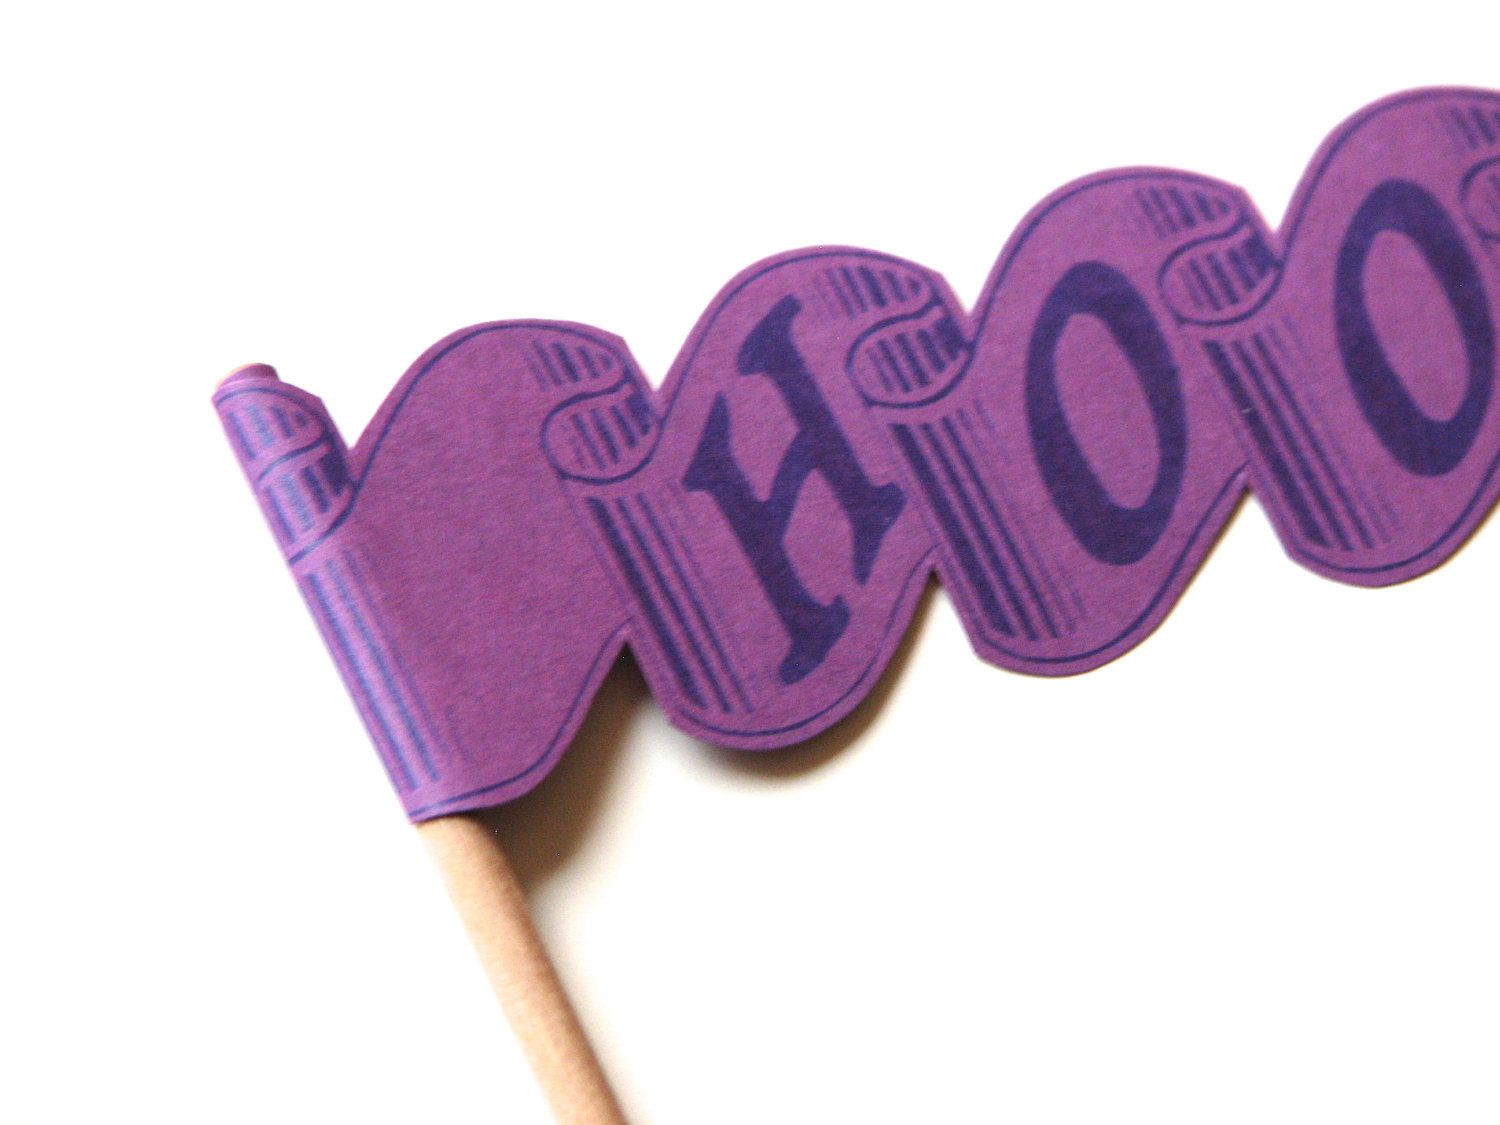 Hooray Party Pennant Flag - Beet Purple. $3.00, via Etsy.